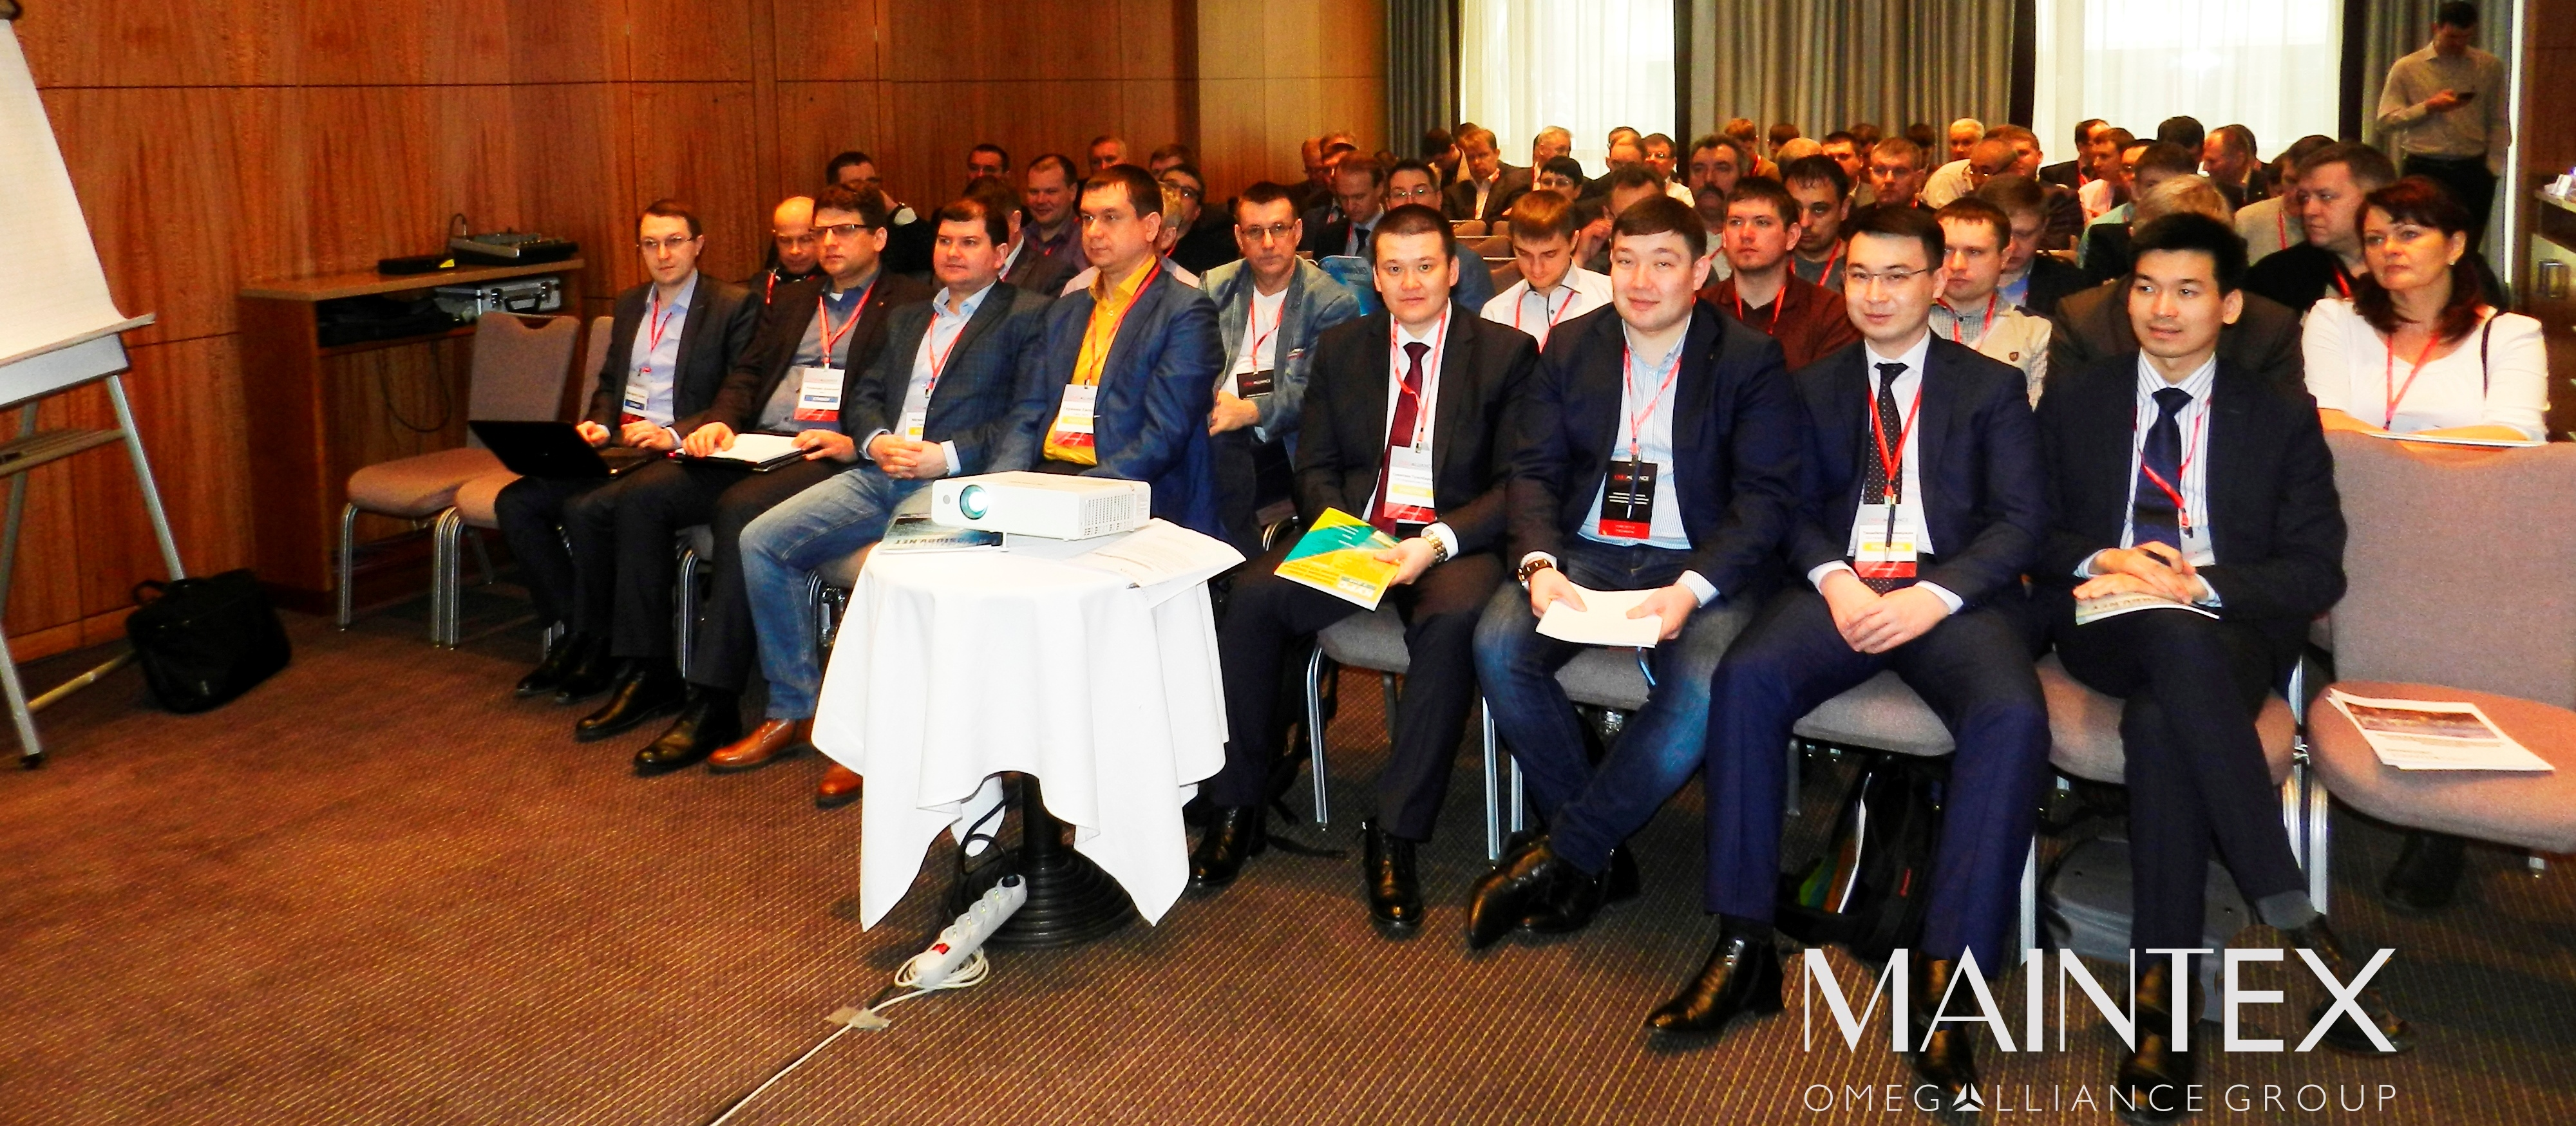 Maintex Held Second Annual Conference on Reliability Management